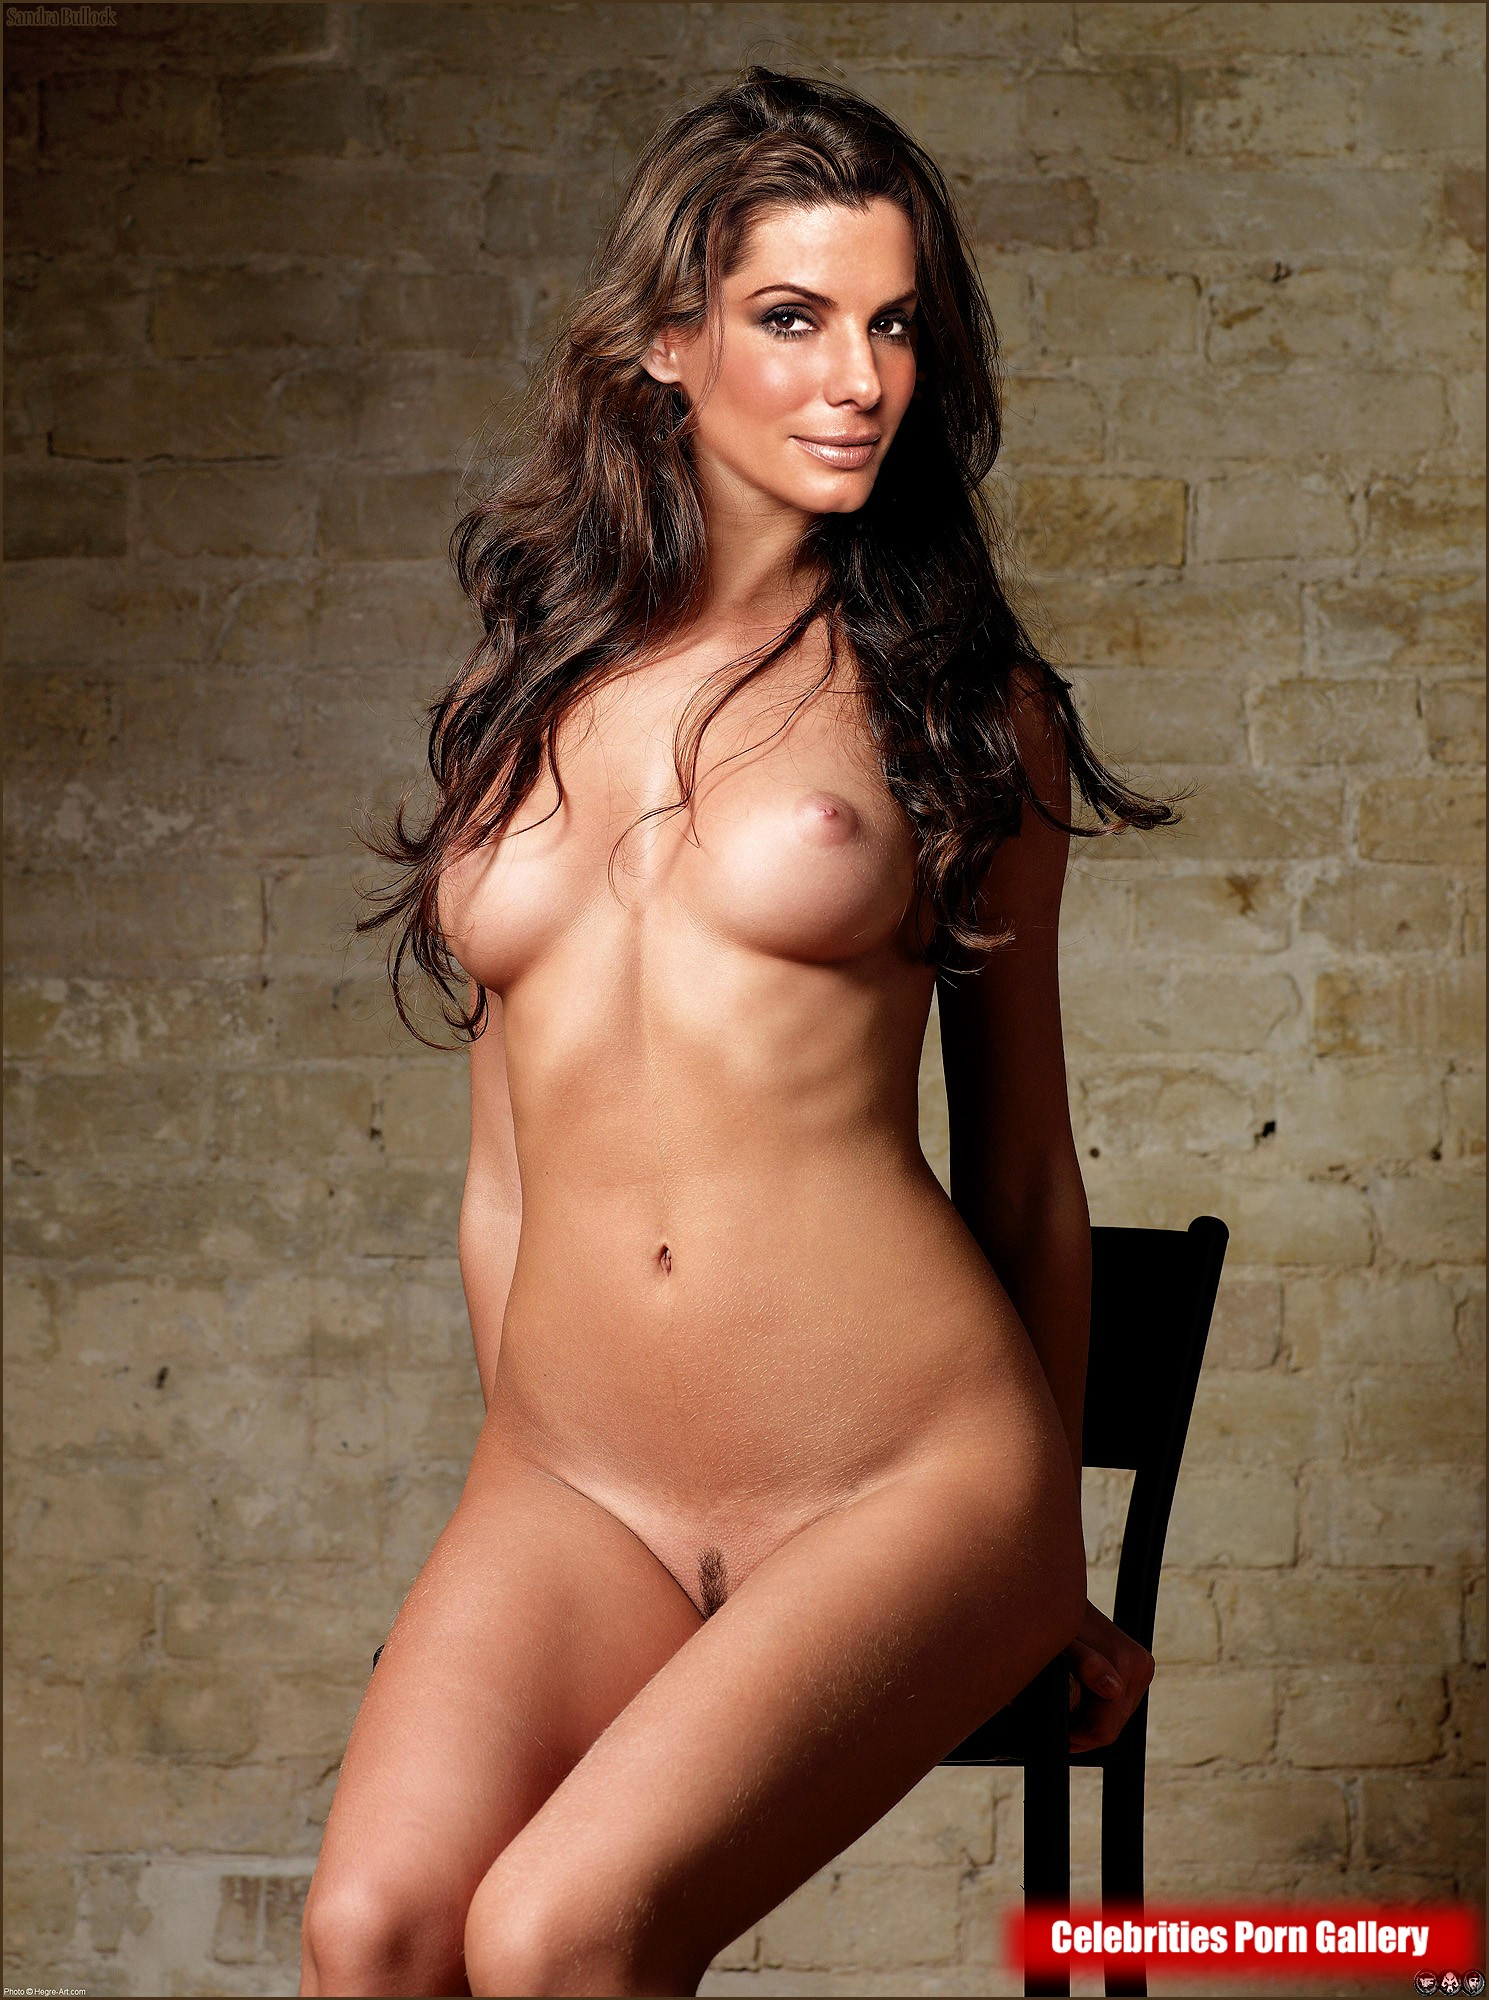 Naked Pictures Of Ali Landry